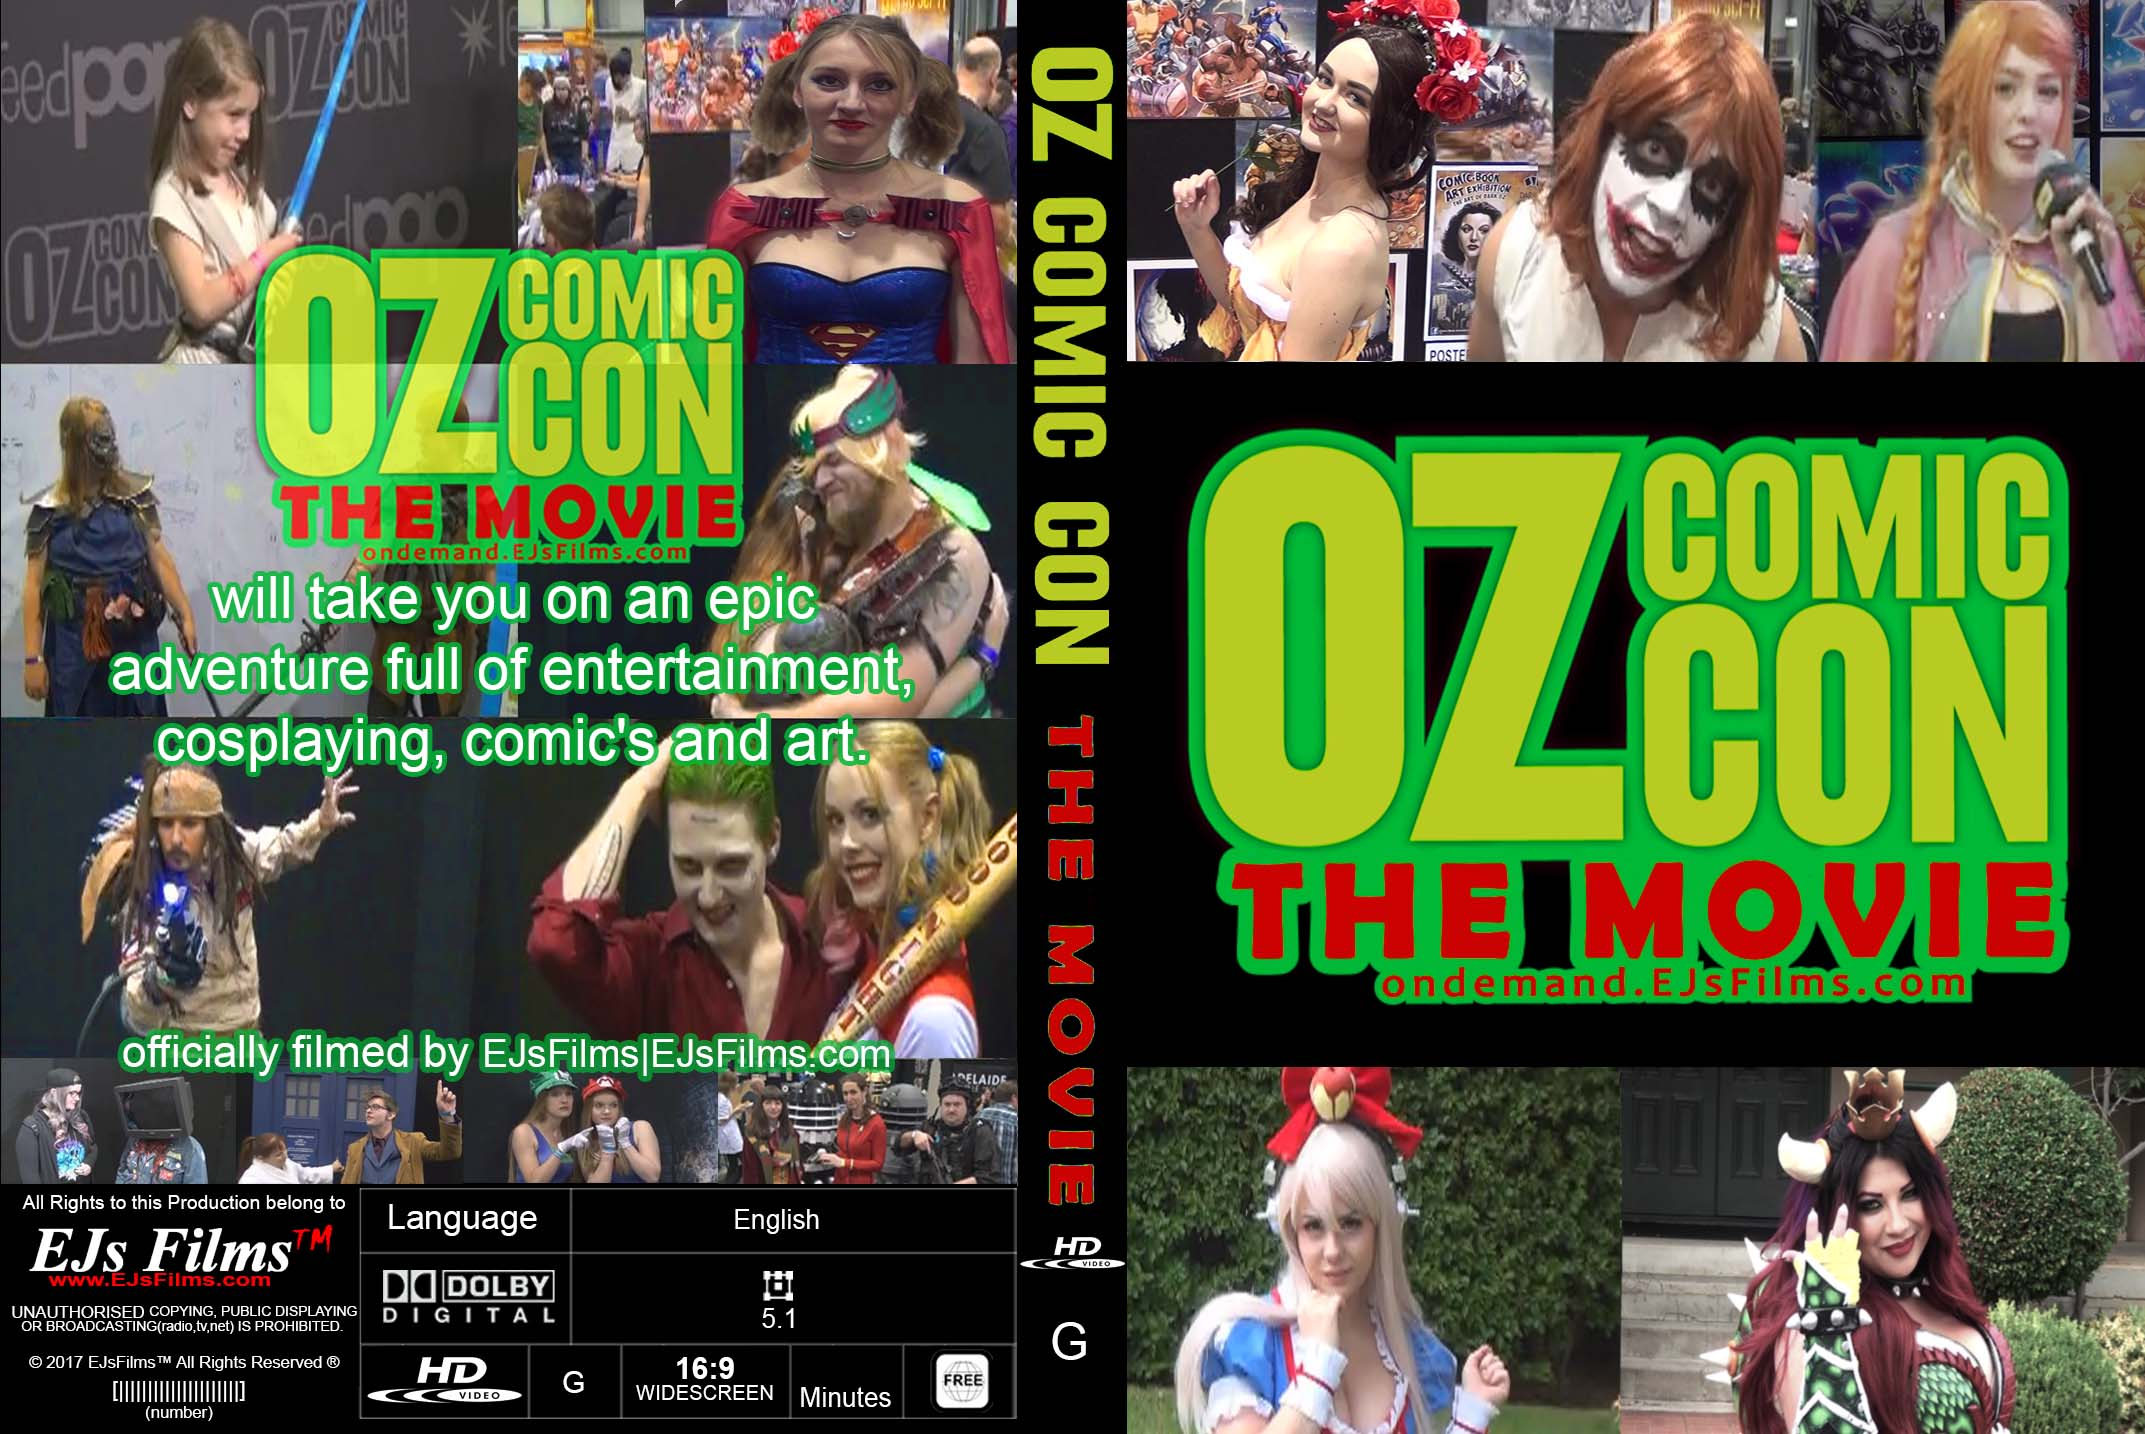 Oz Comic Con The Movie | PG | Documentary | 2017 | by EJsFilms.com -